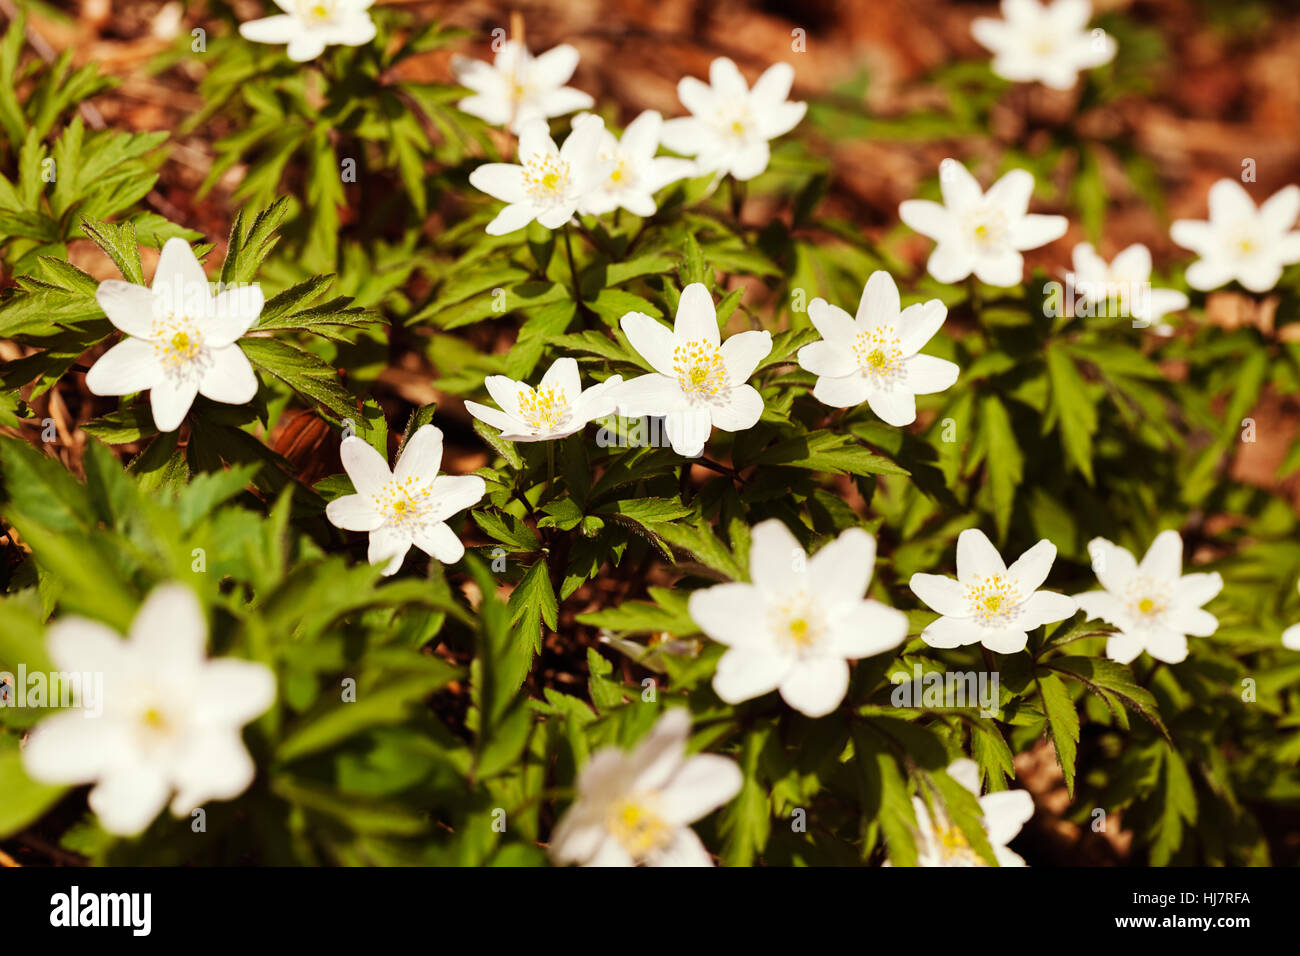 White Starlike Flowers In Nature Note Shallow Dept Of Field Stock